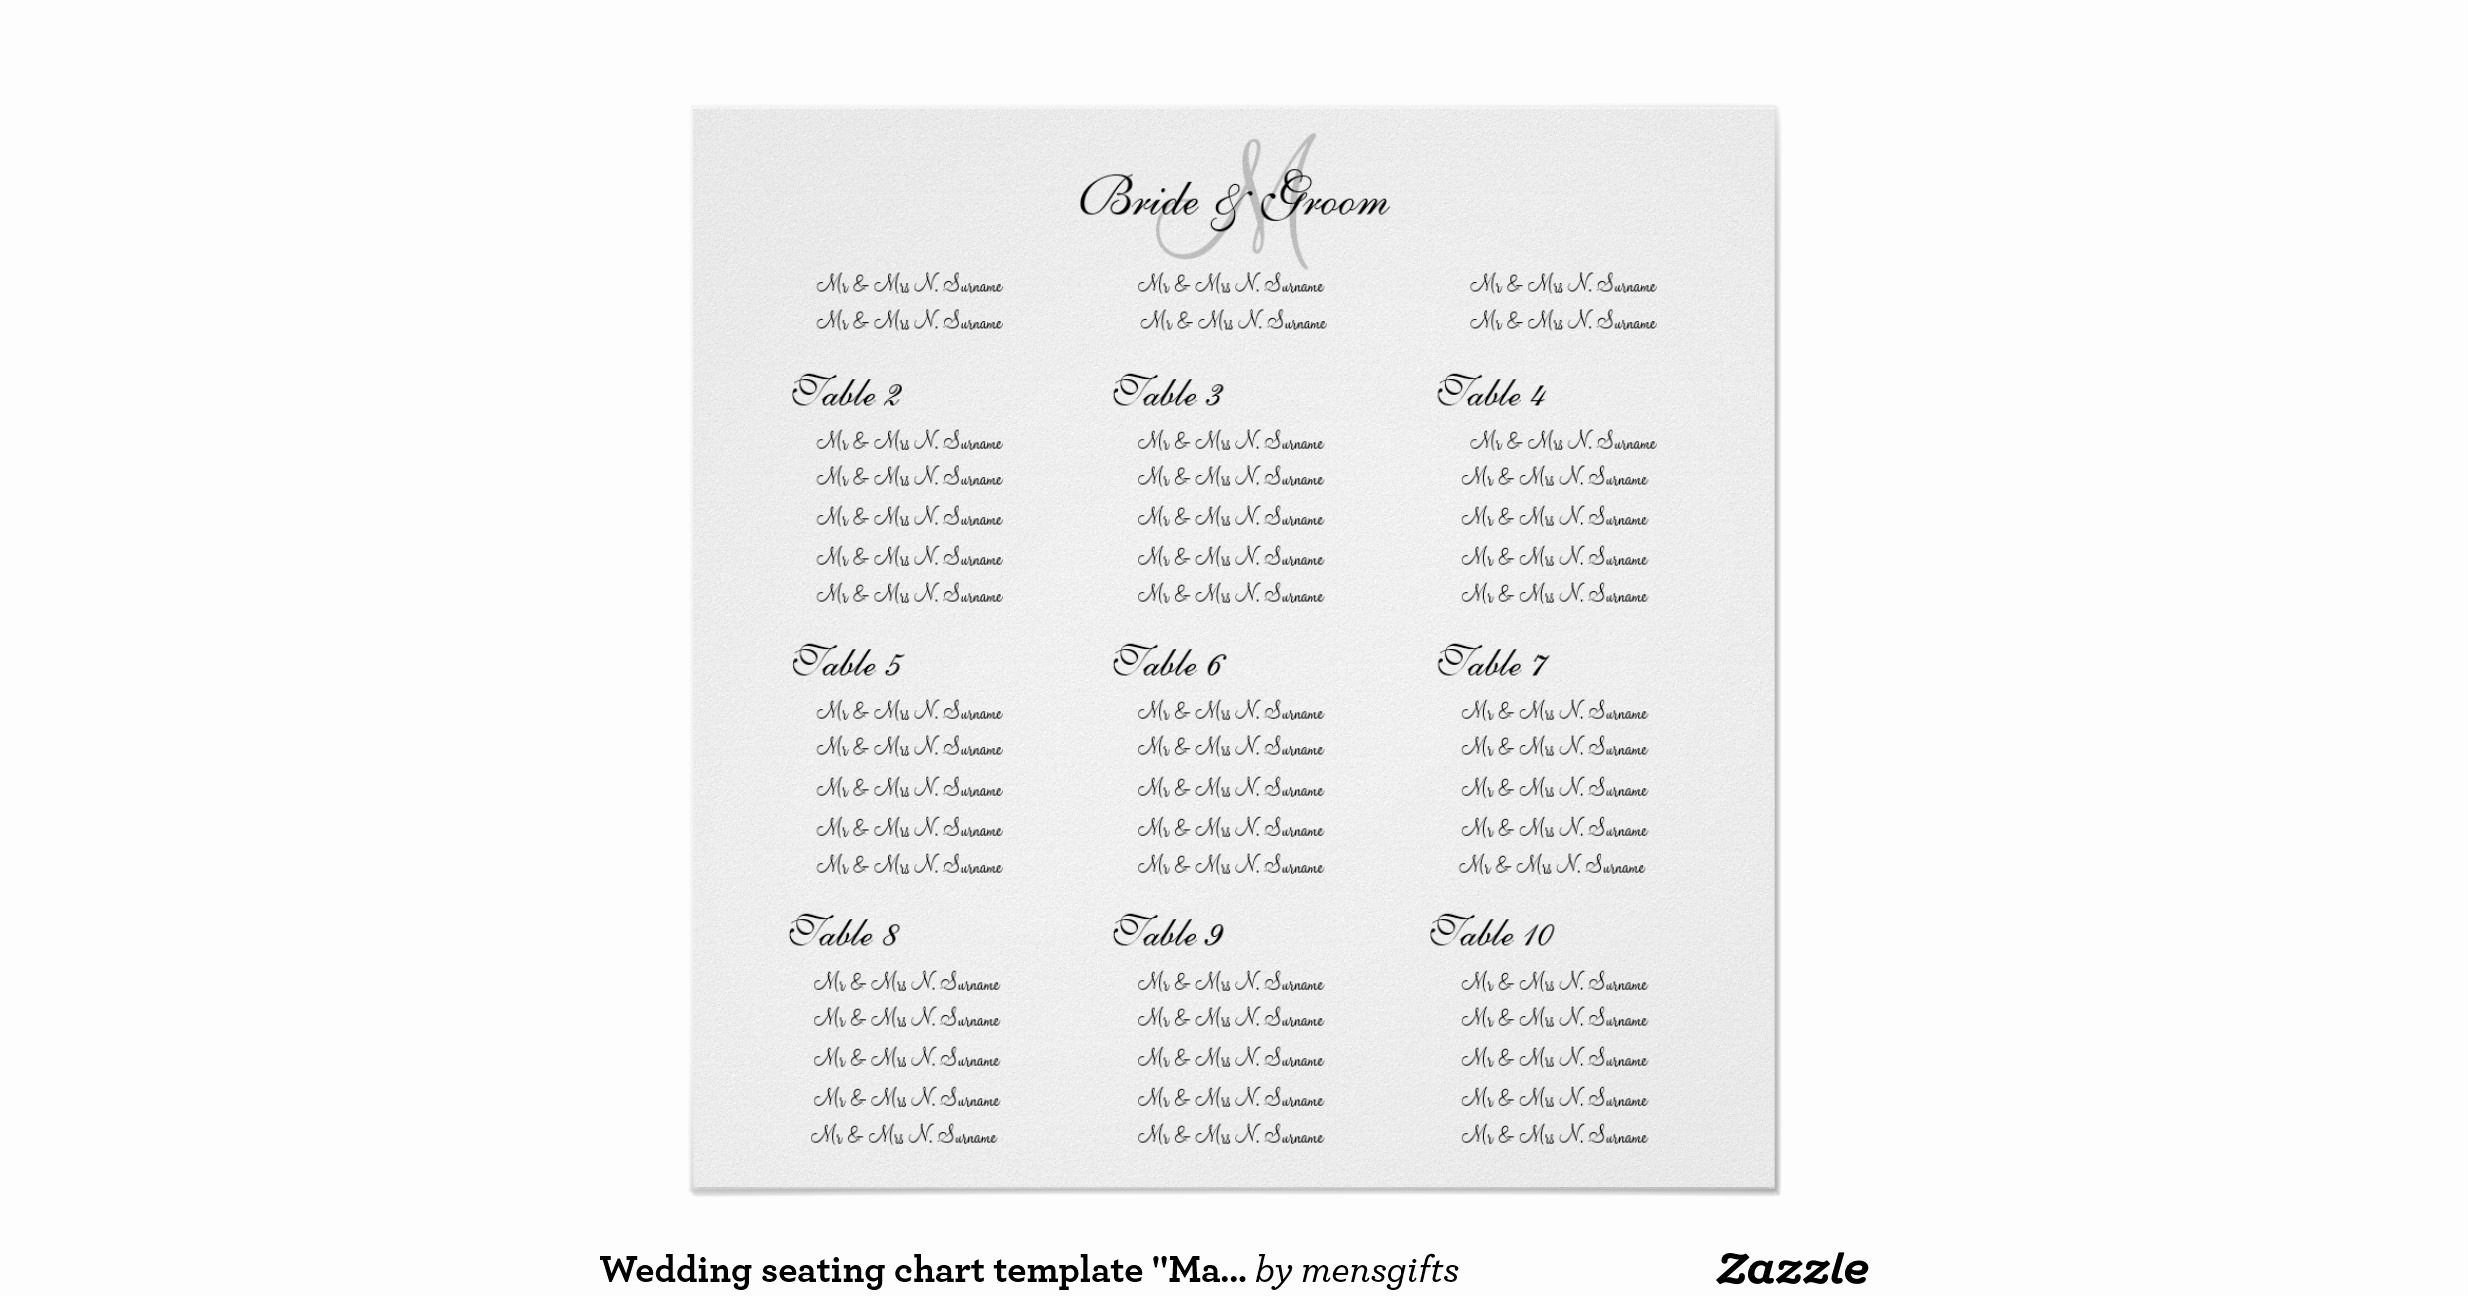 Wedding Seating Chart Poster Template New Wedding Seating Chart Template Make Your Own Poster